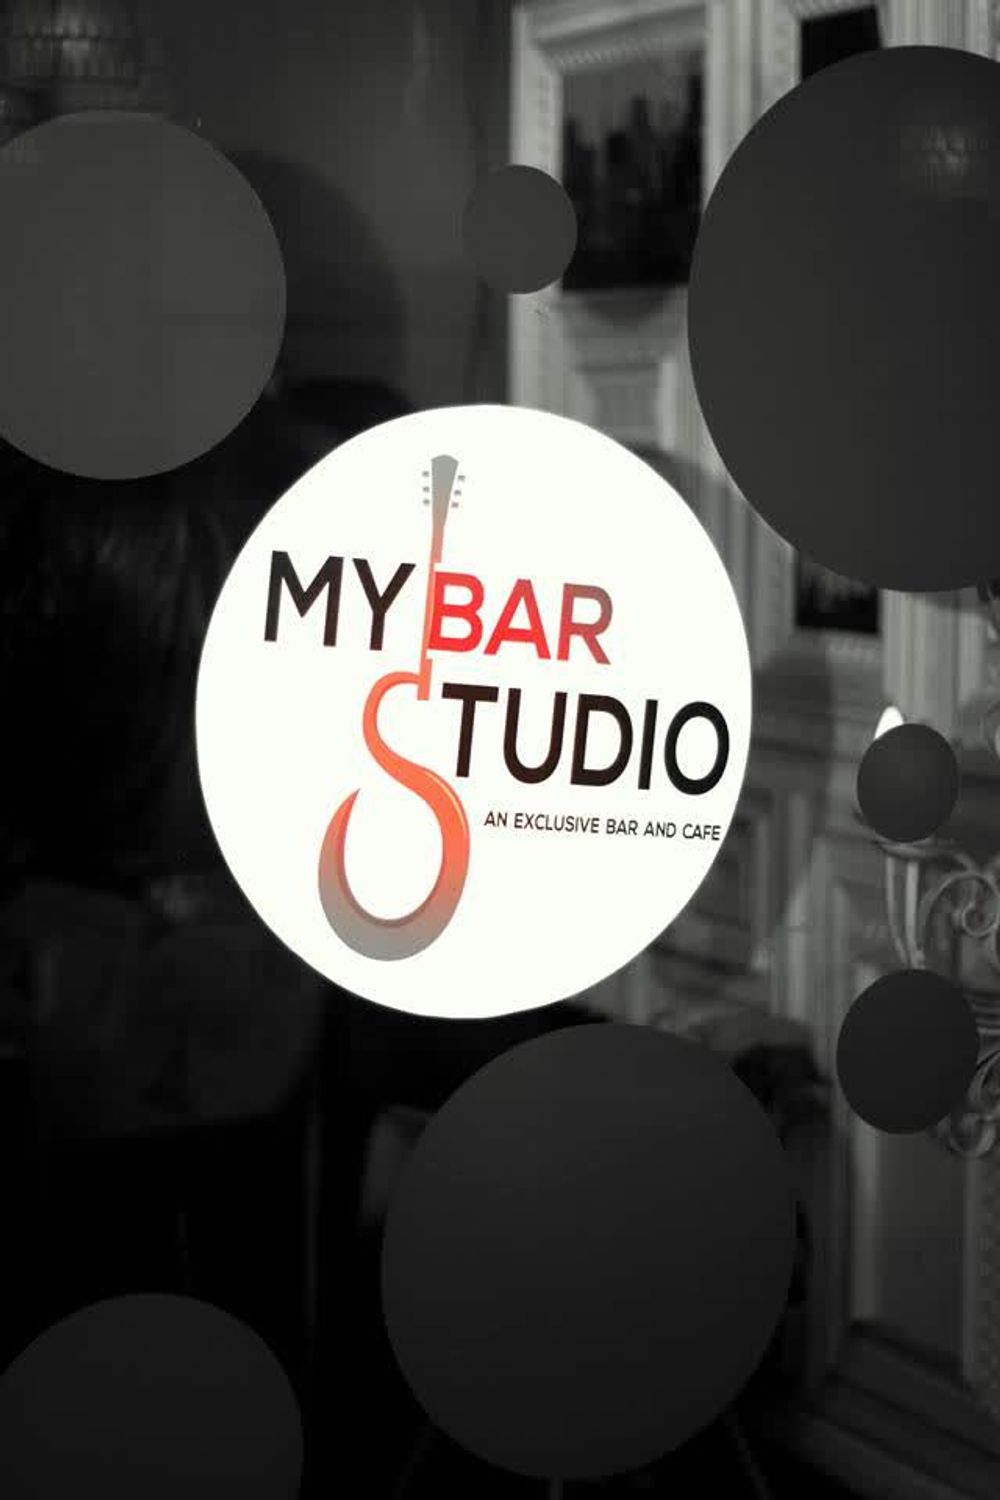 title: My Bar Studio